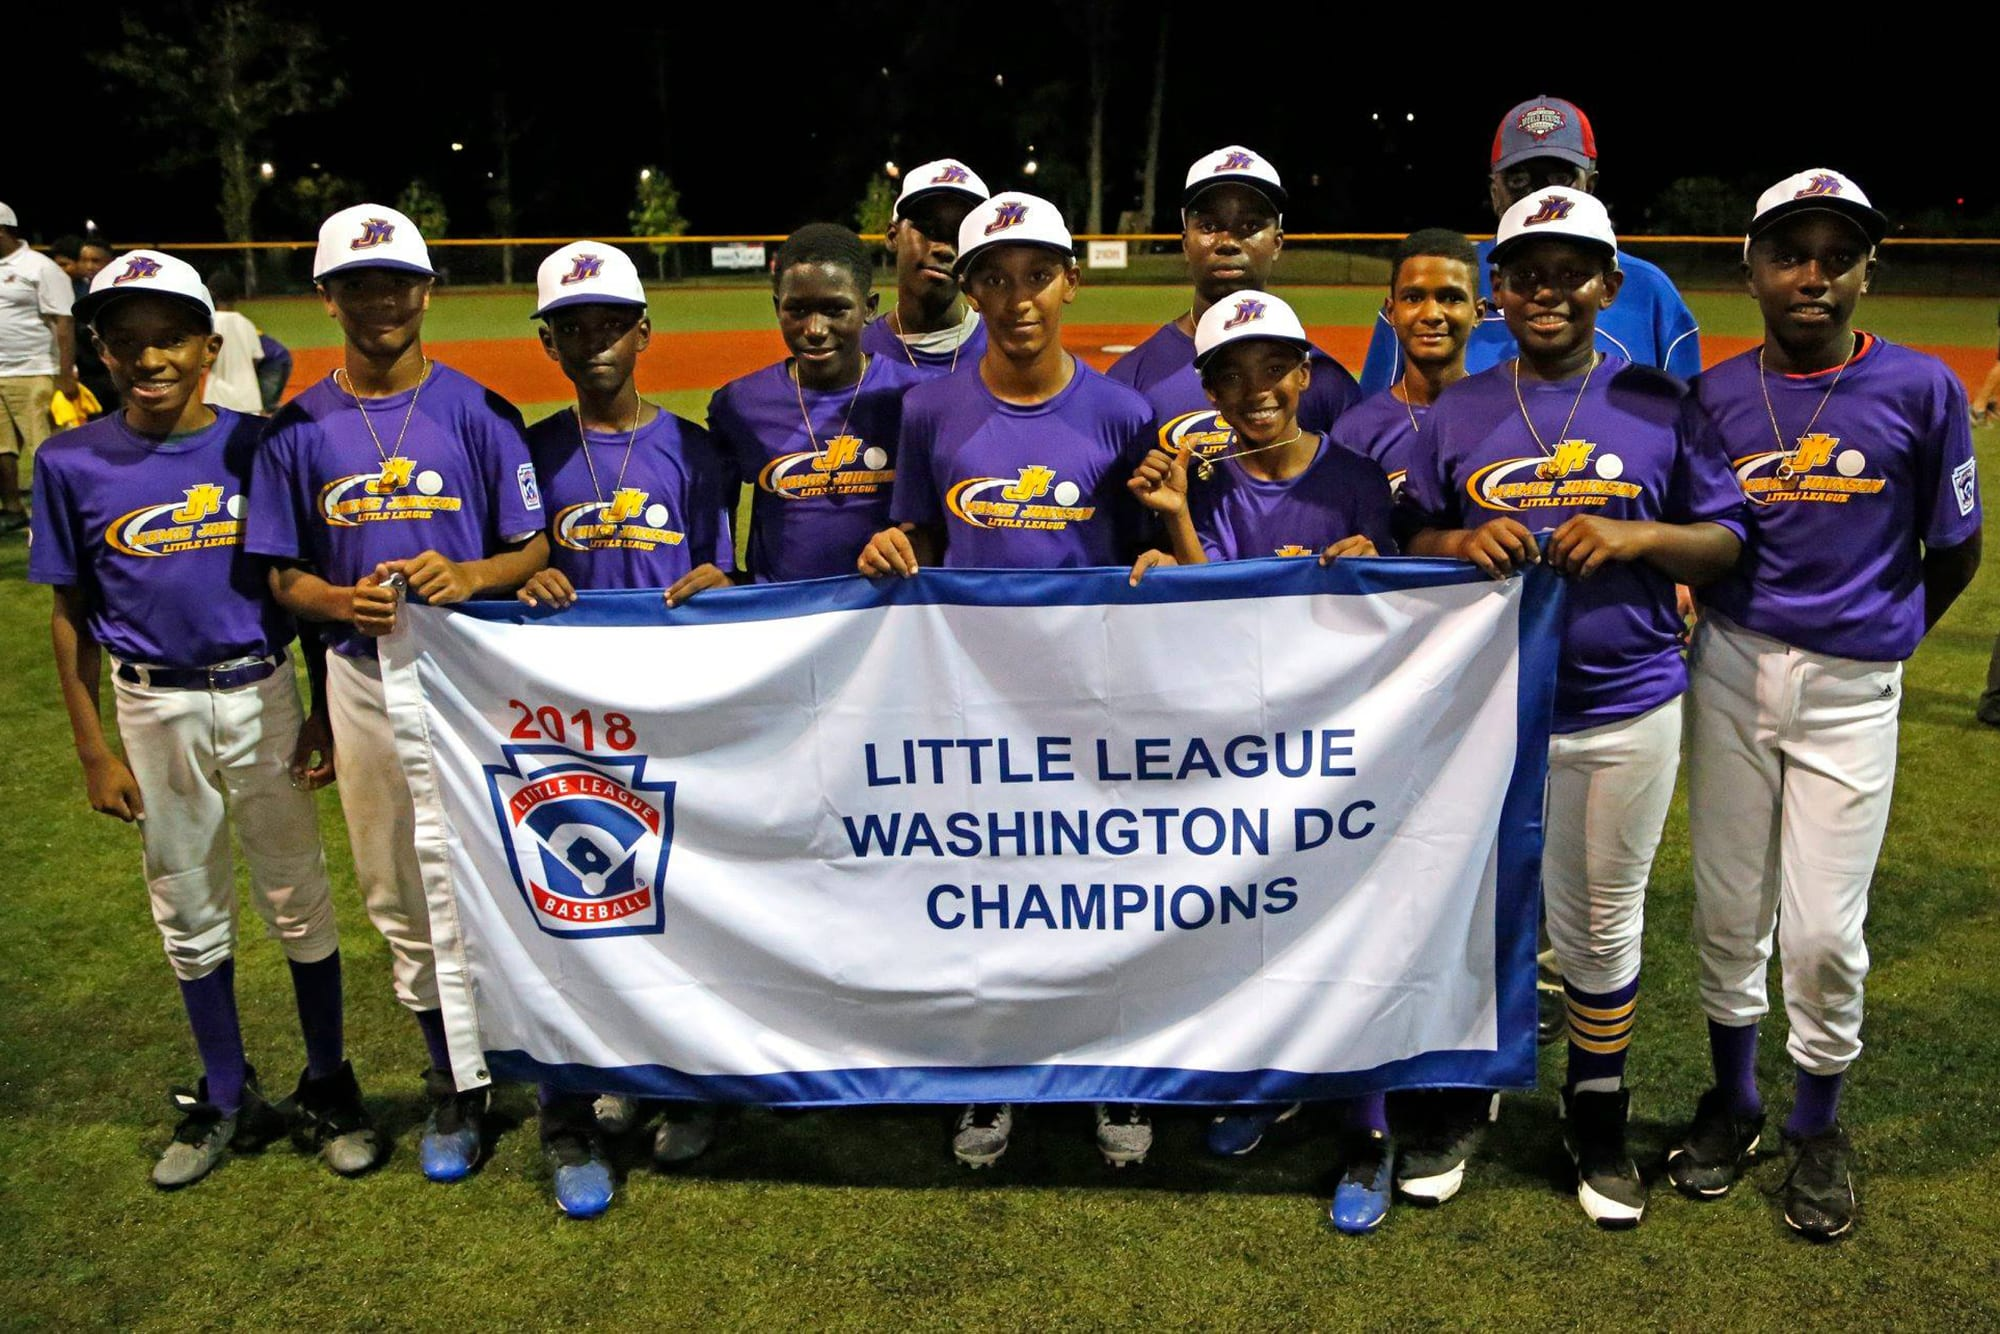 Mamie Johnson Little League Holds Championship Banner